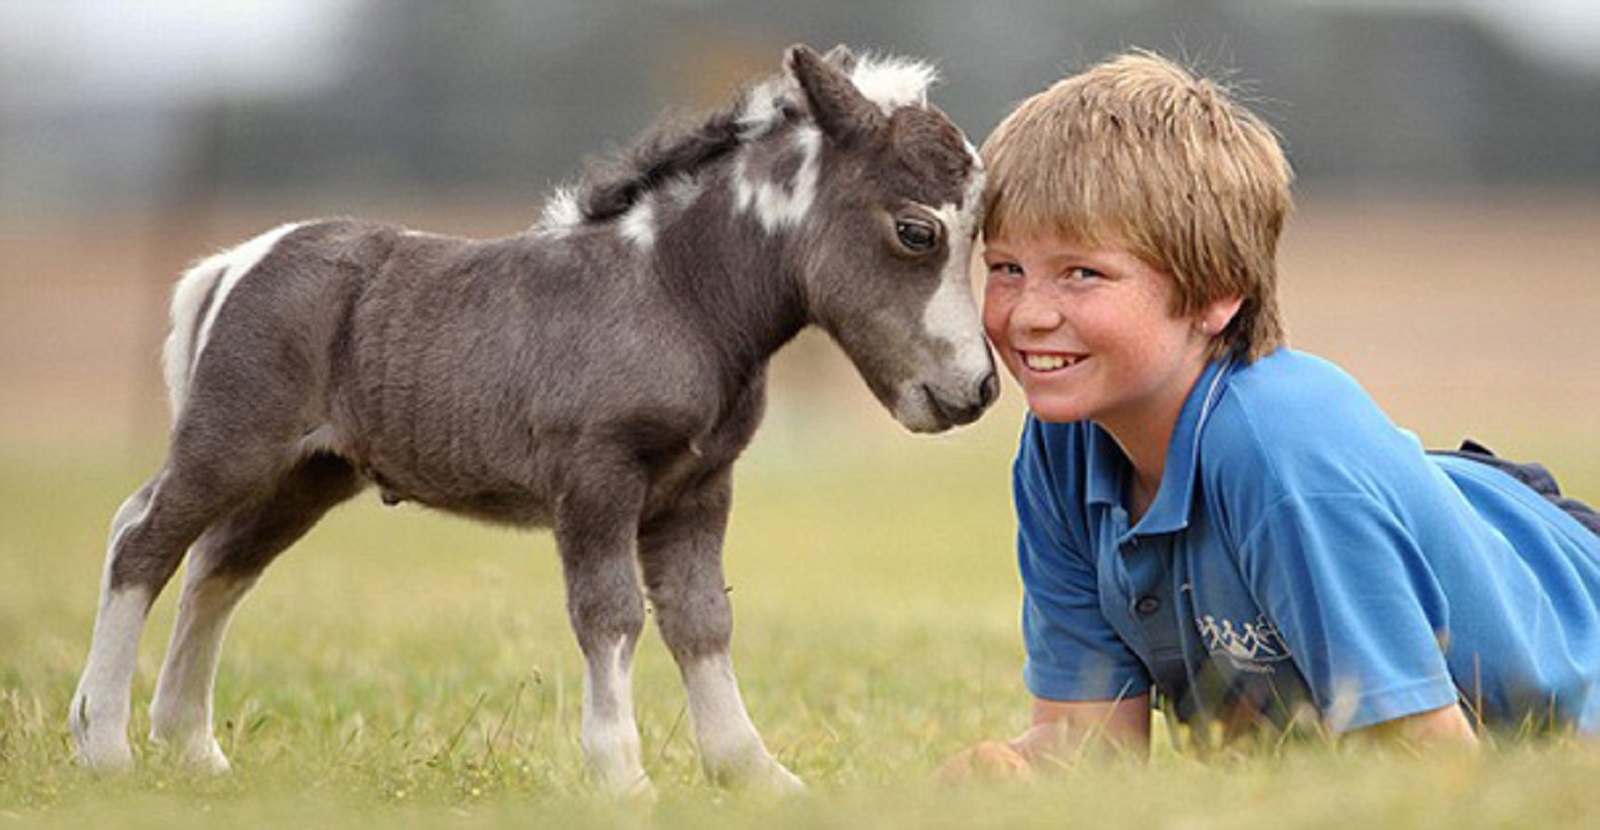 Miniature Horses as Service Animals – Anything Pawsable